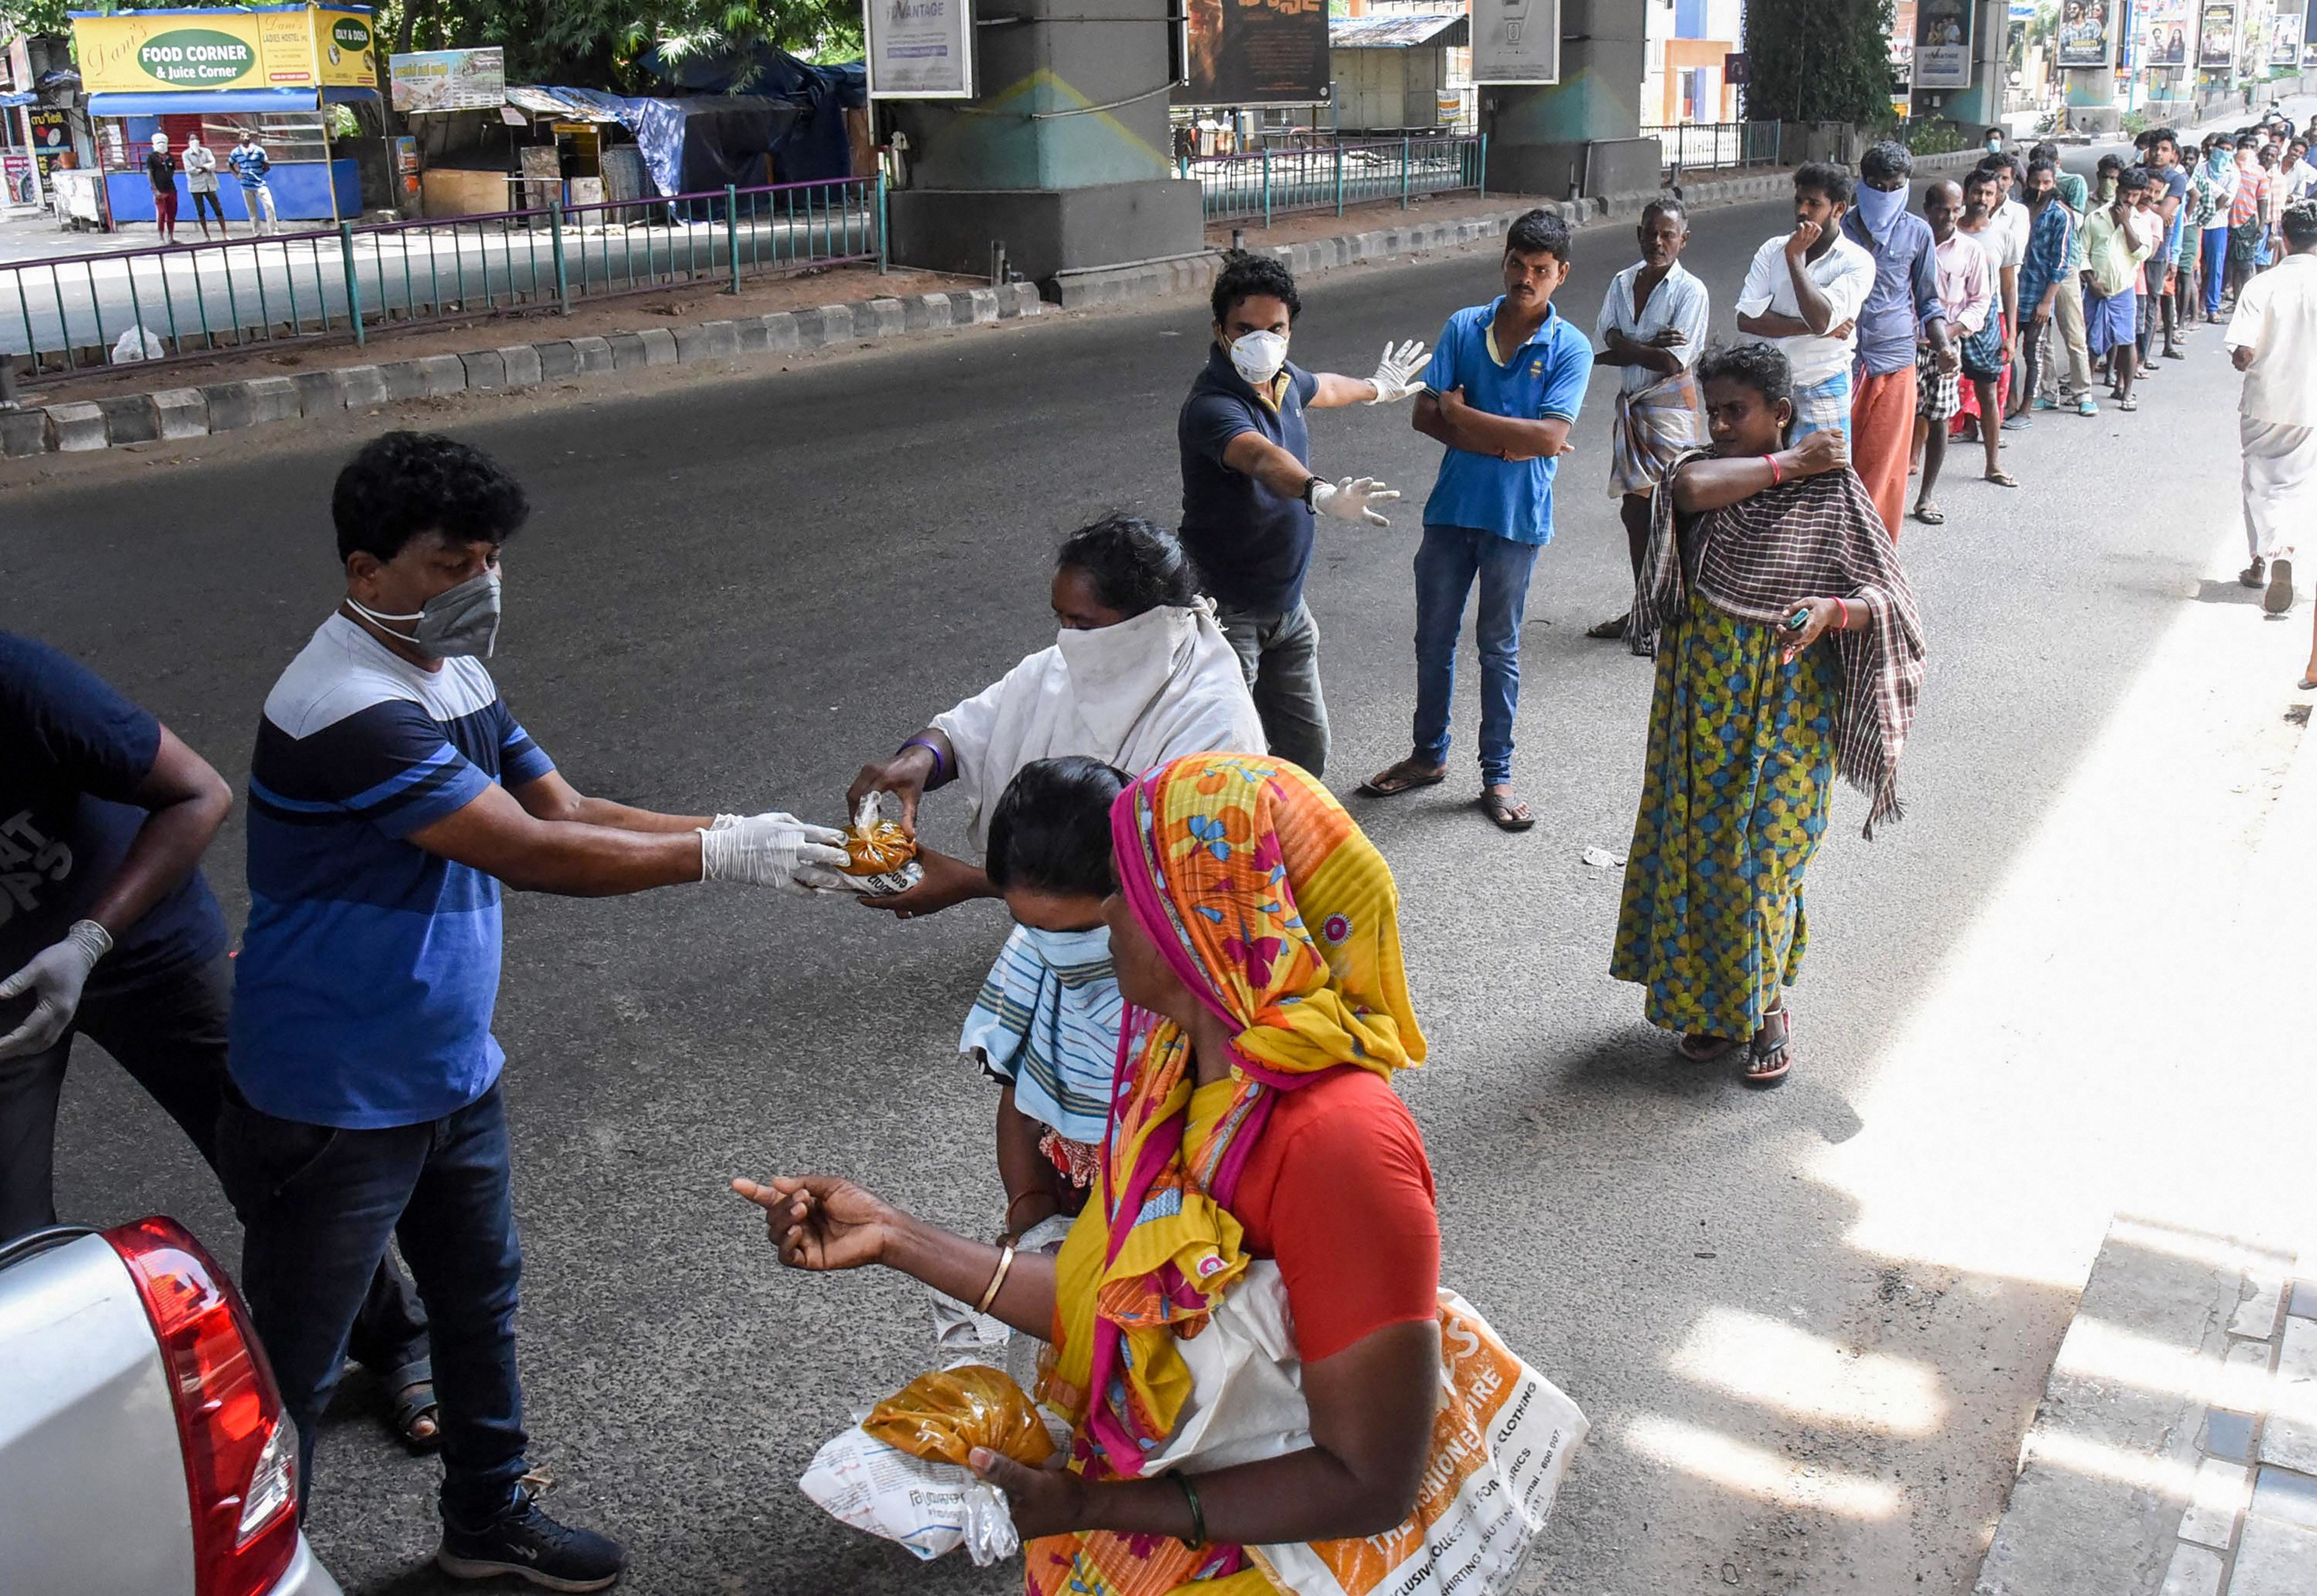 Social workers distribute food packets among the needy people during the nationwide lockdown imposed to contain the spread of coronavirus, in Kochi, Monday, April 6, 2020.